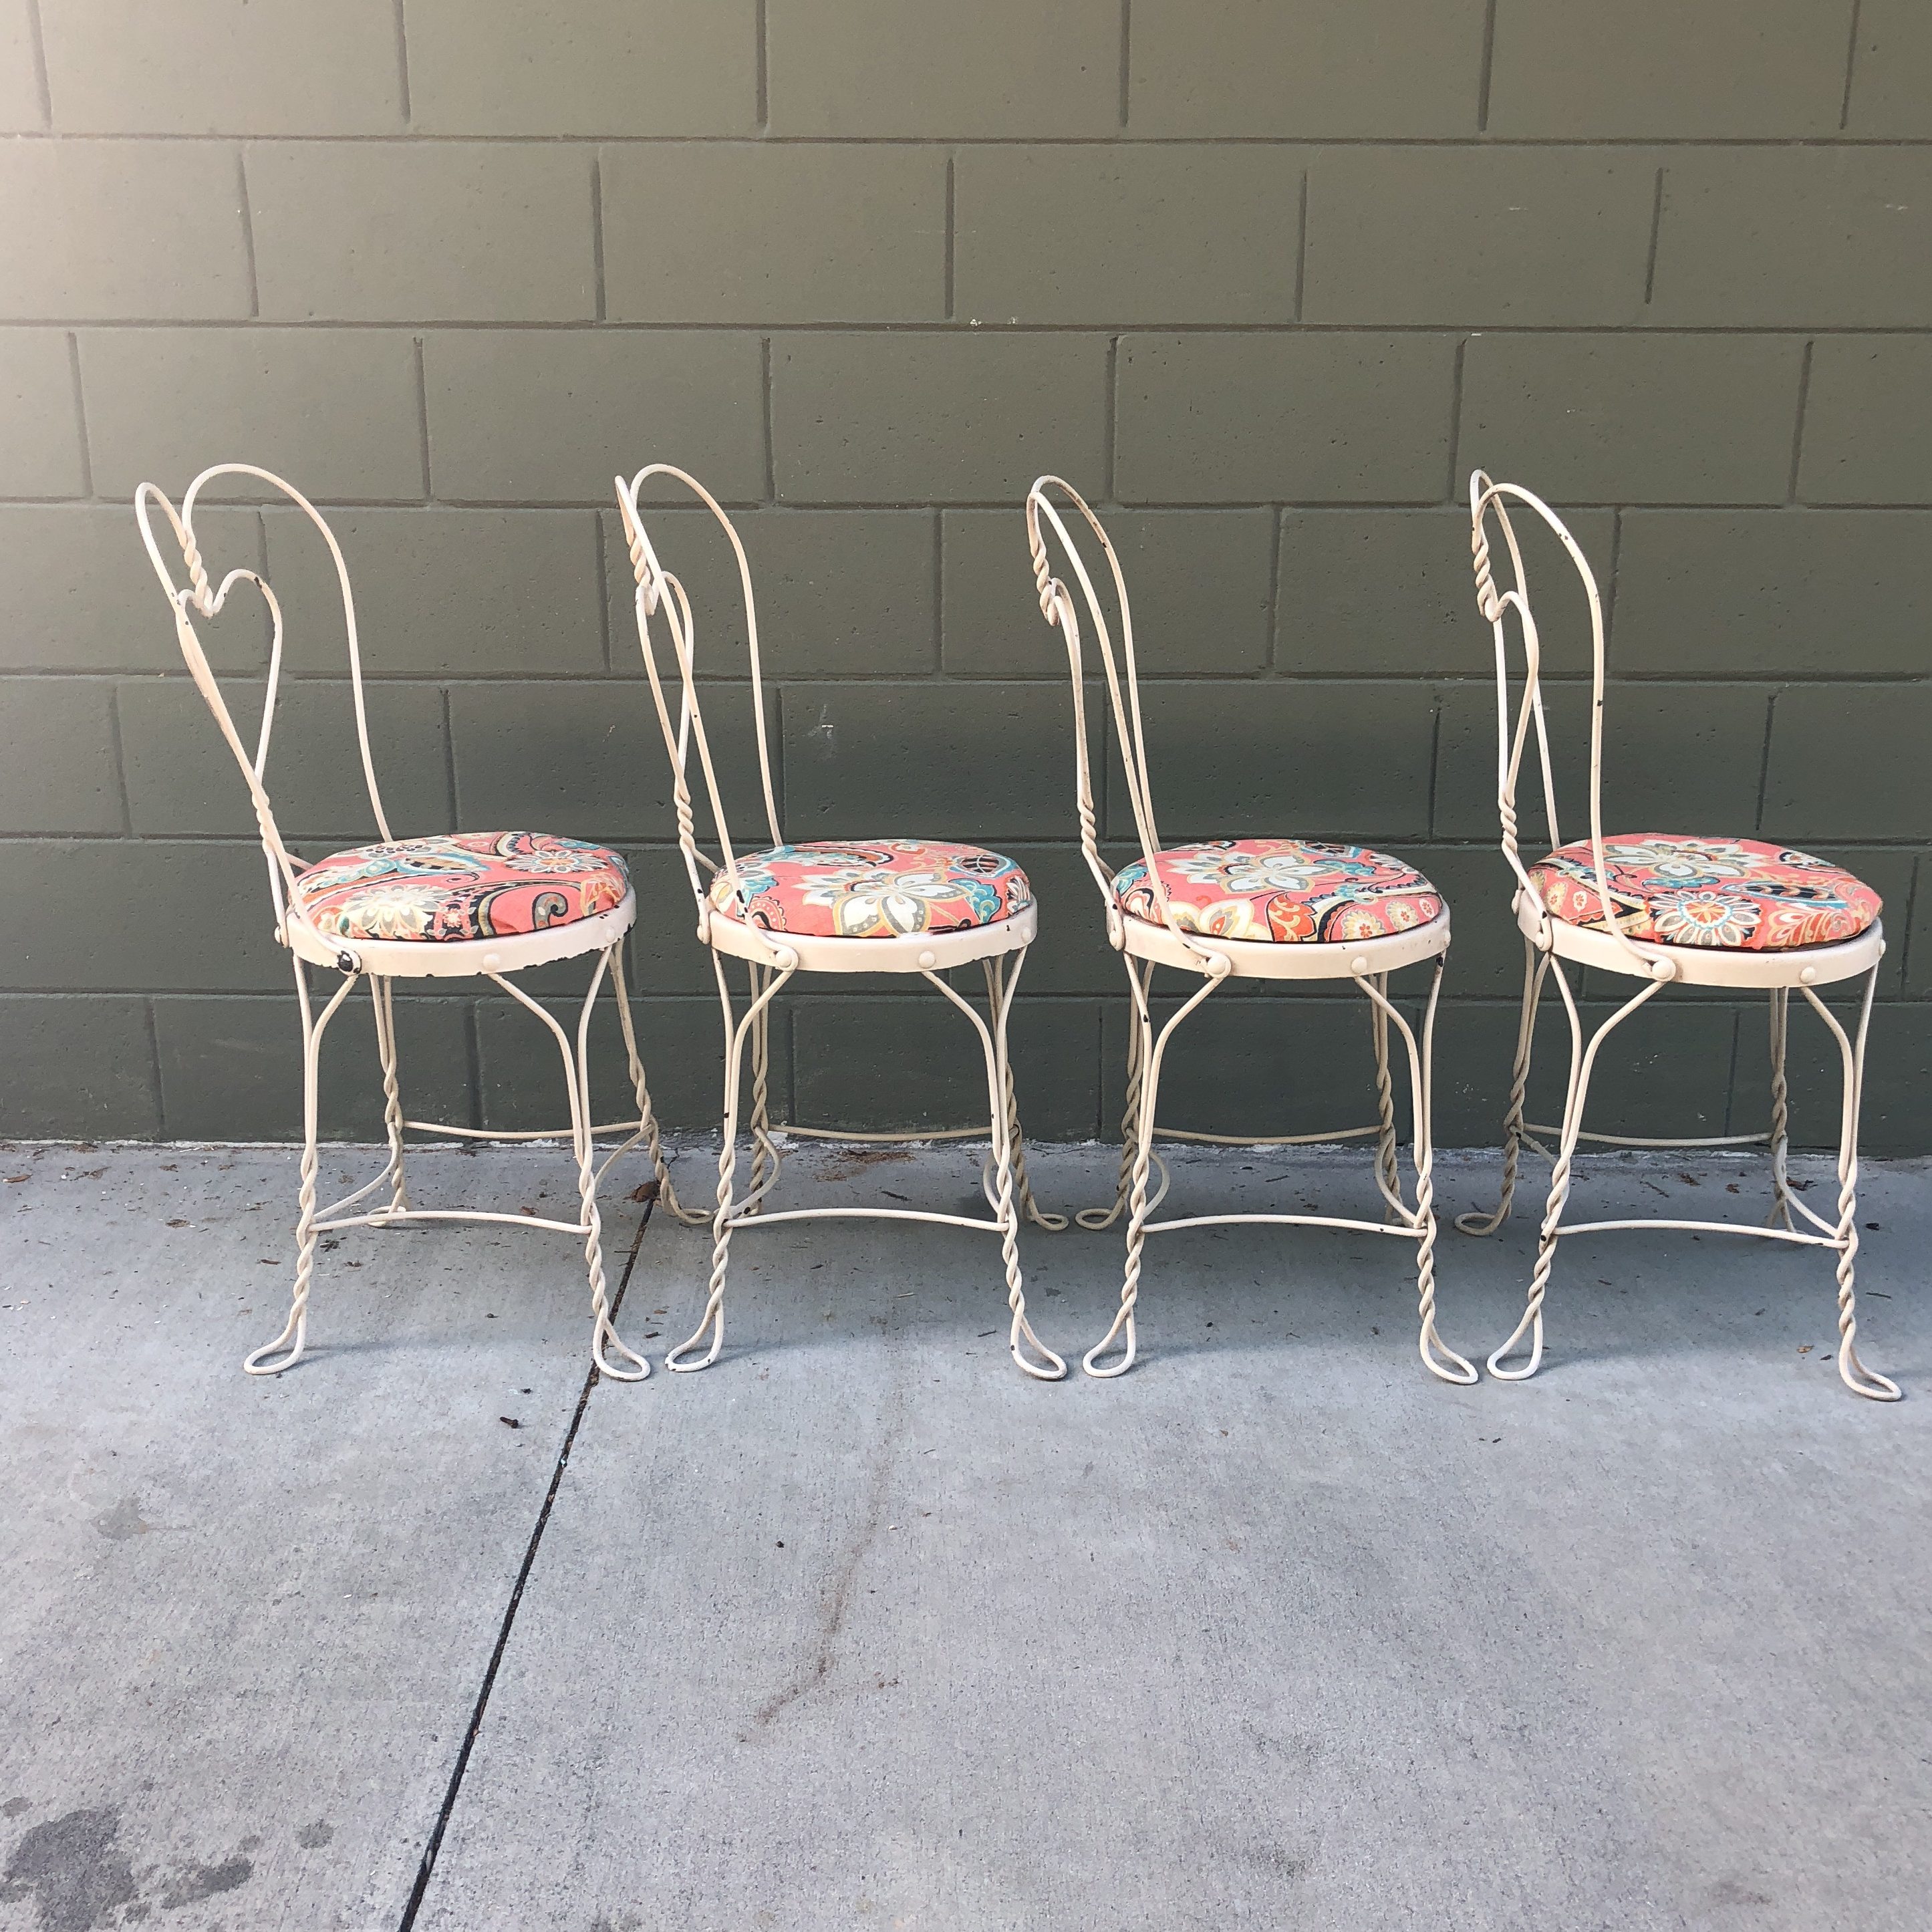 Vintage Set Of 4 Metal Ice Cream Parlor Chairs. Just The Right Amount Of  That